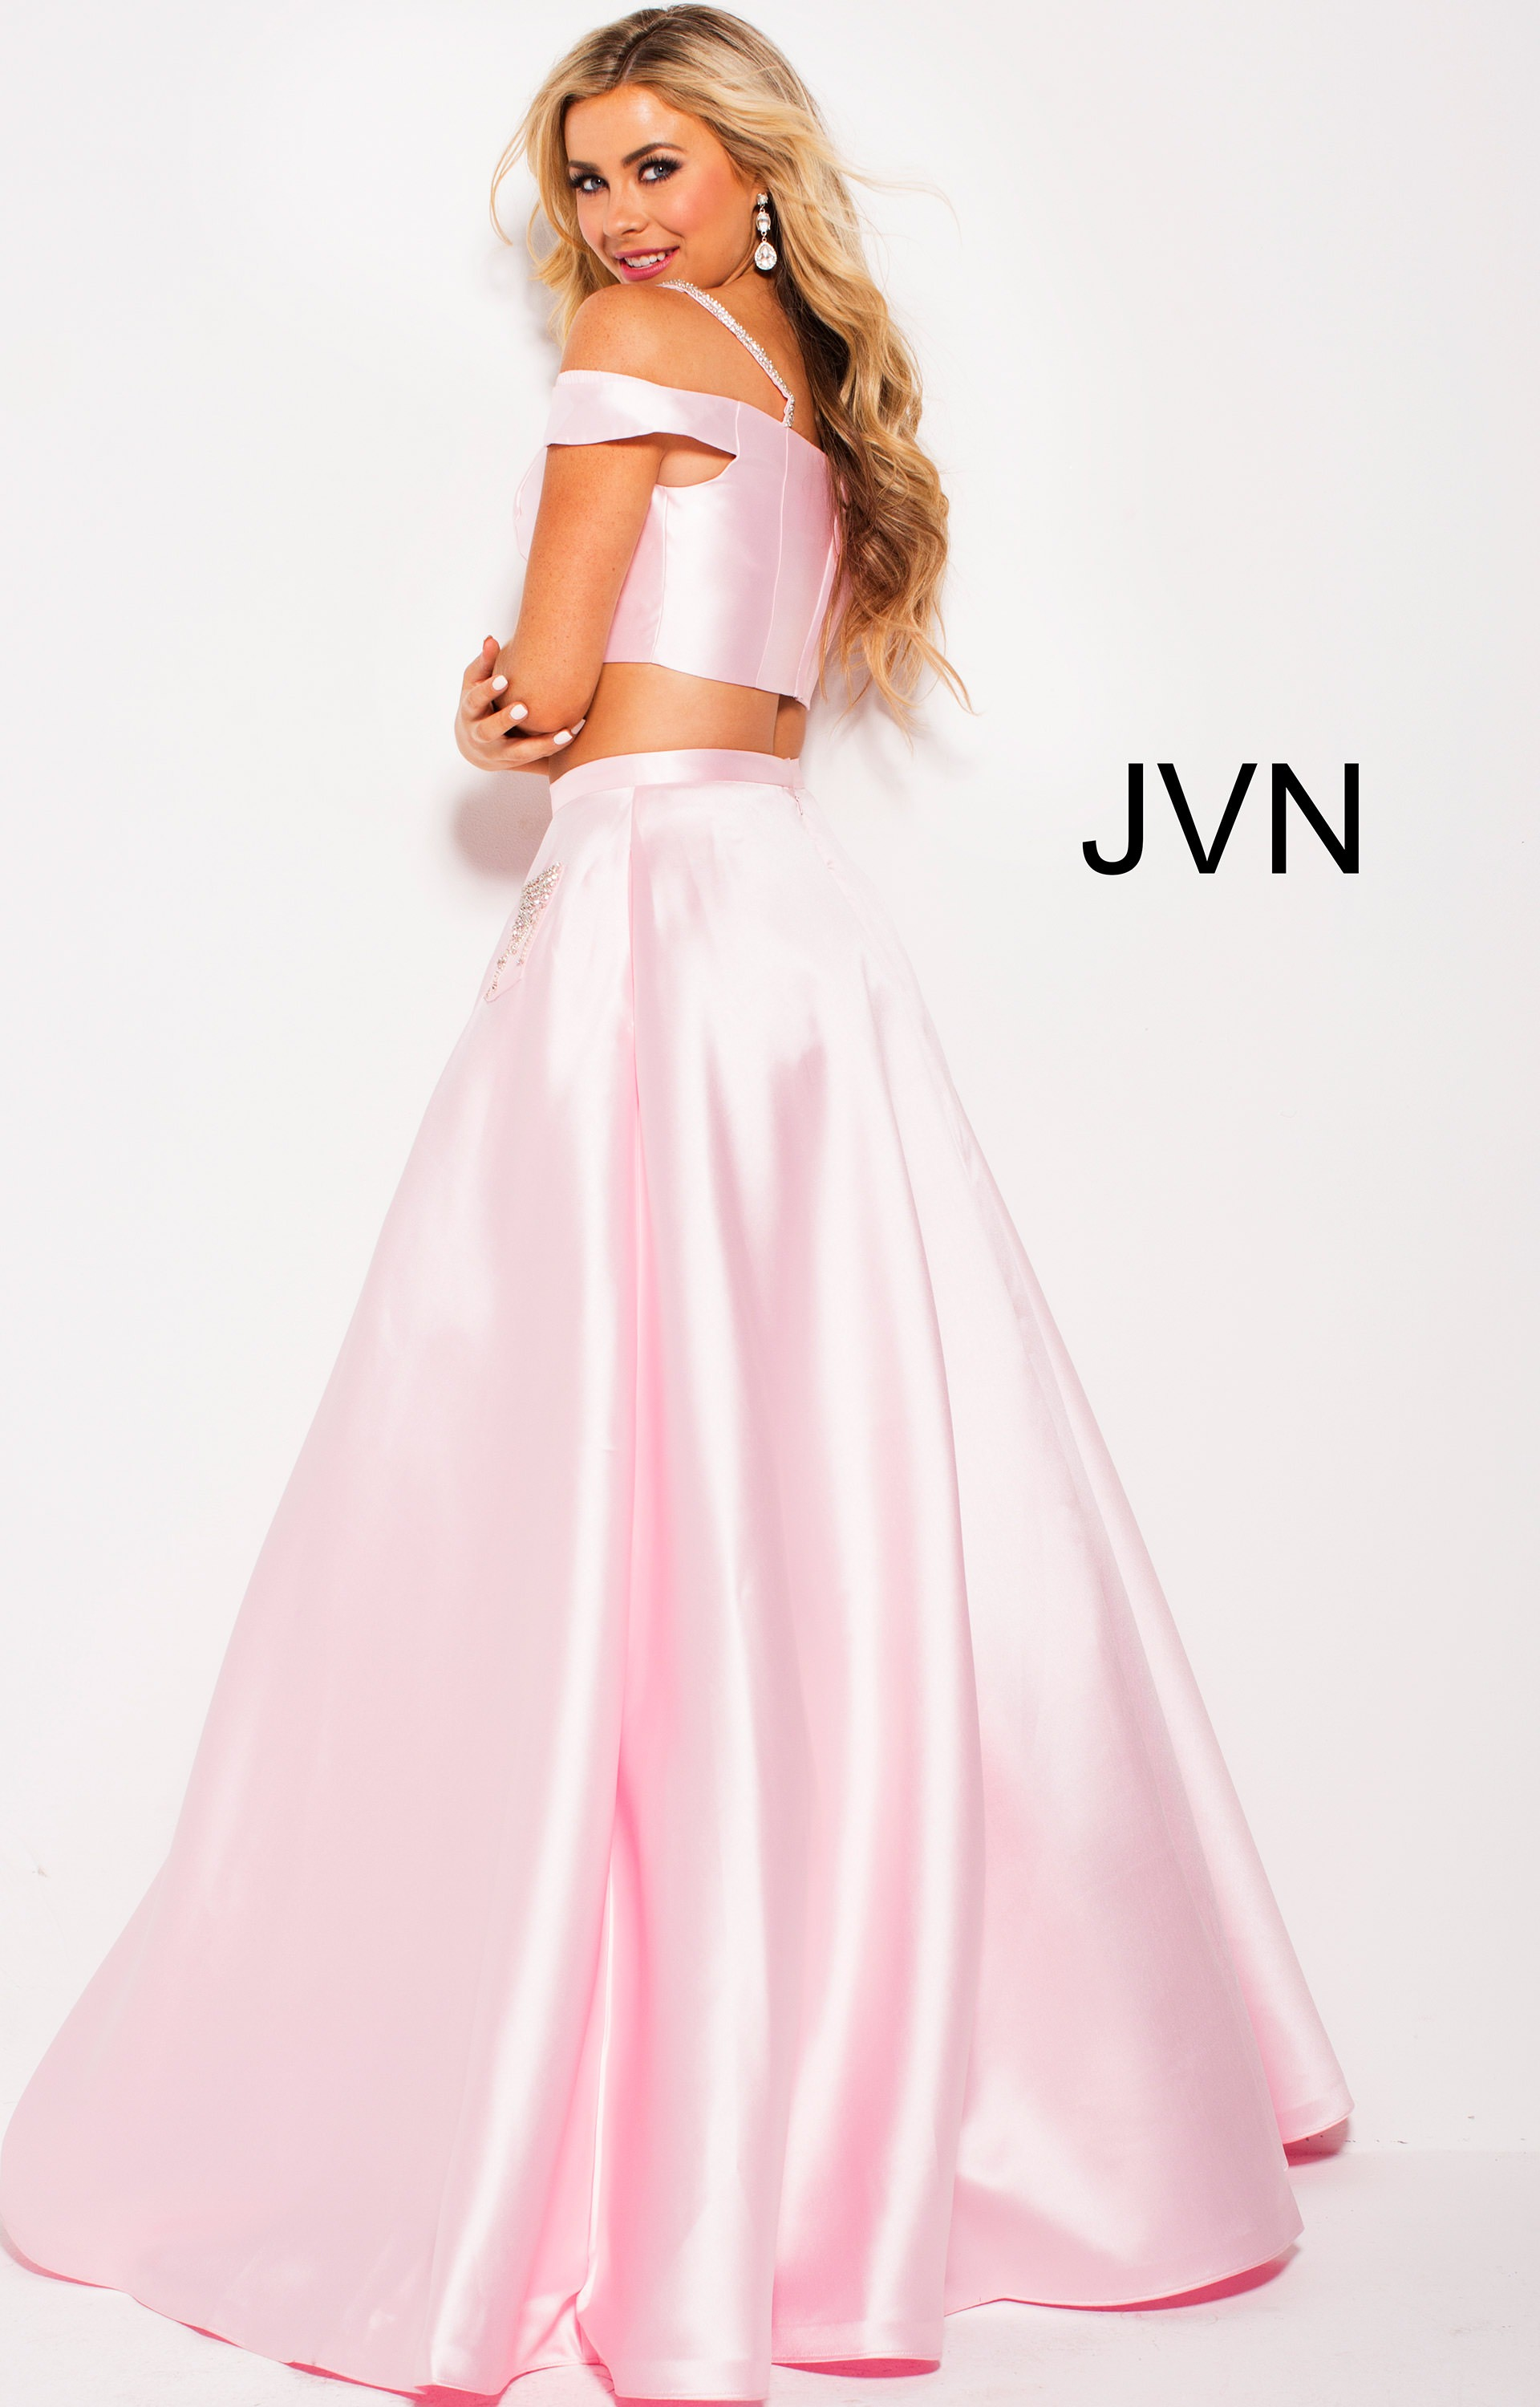 fba60c54837285 Jovani jvn61190 - Off the Shoulder Two-Piece Ball Gown Style Dress